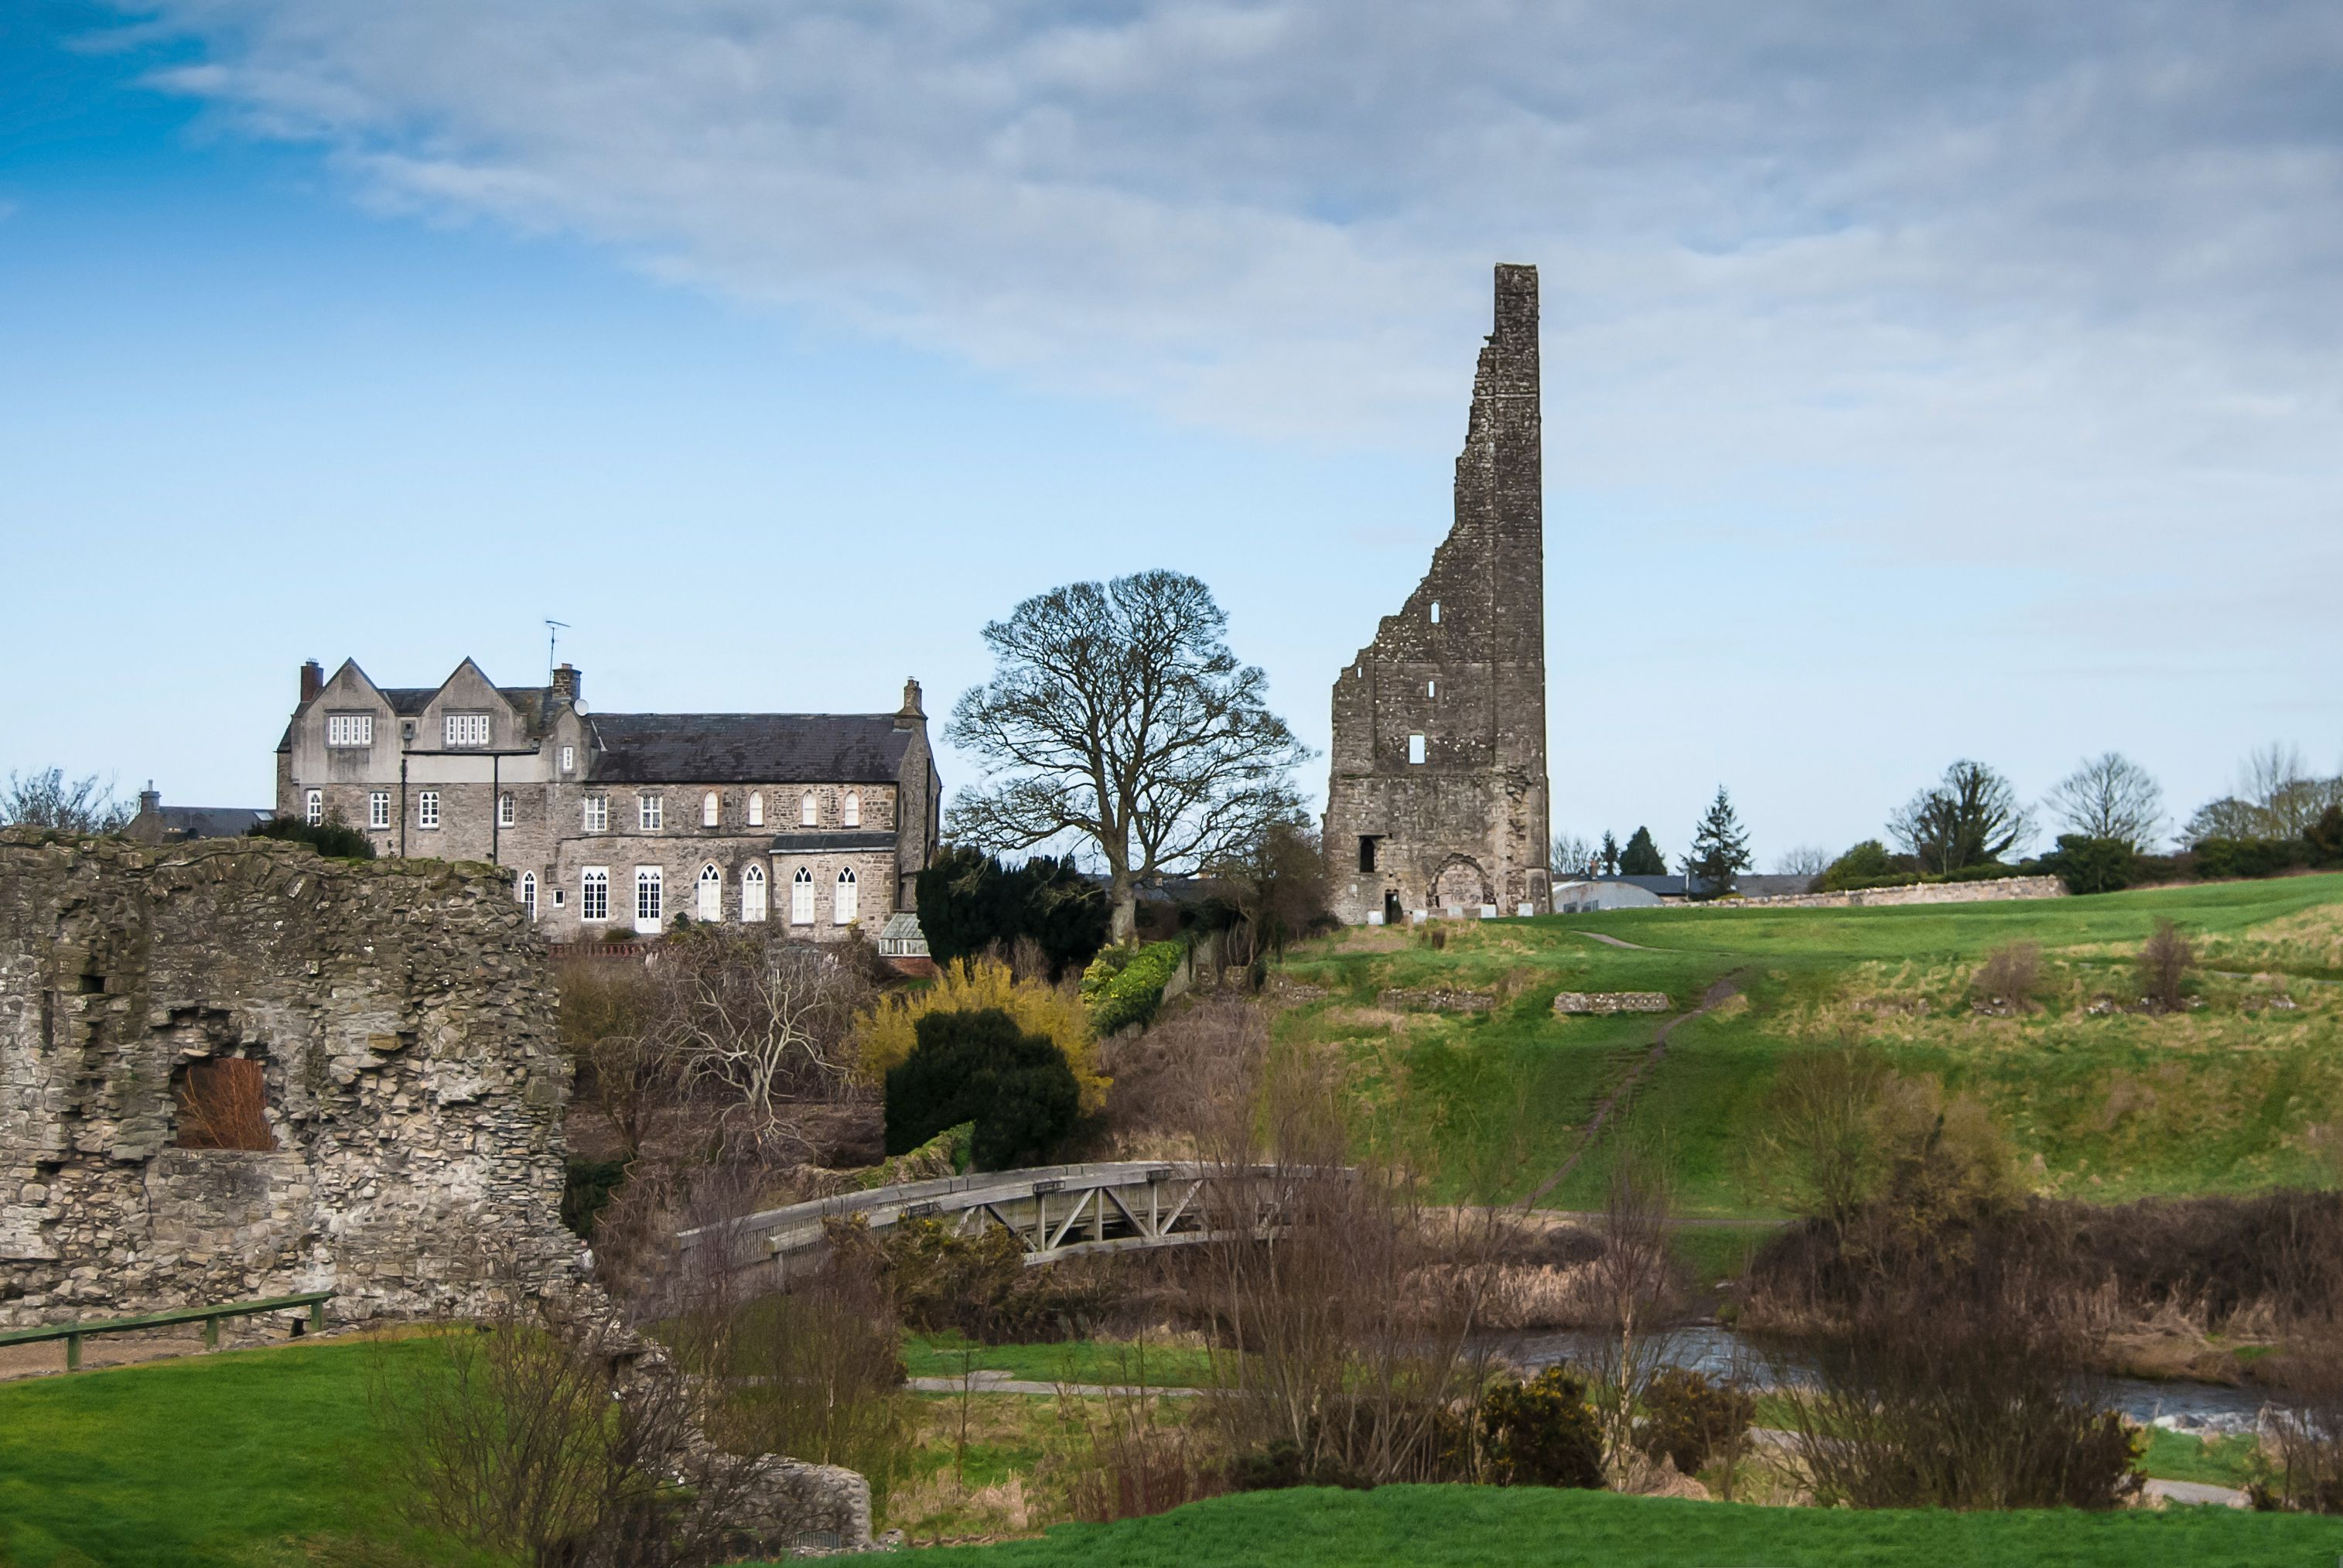 St Mary's Abbey & Yellow Steeple, Trim, Co. Meath. View from Trim Castle, Ireland